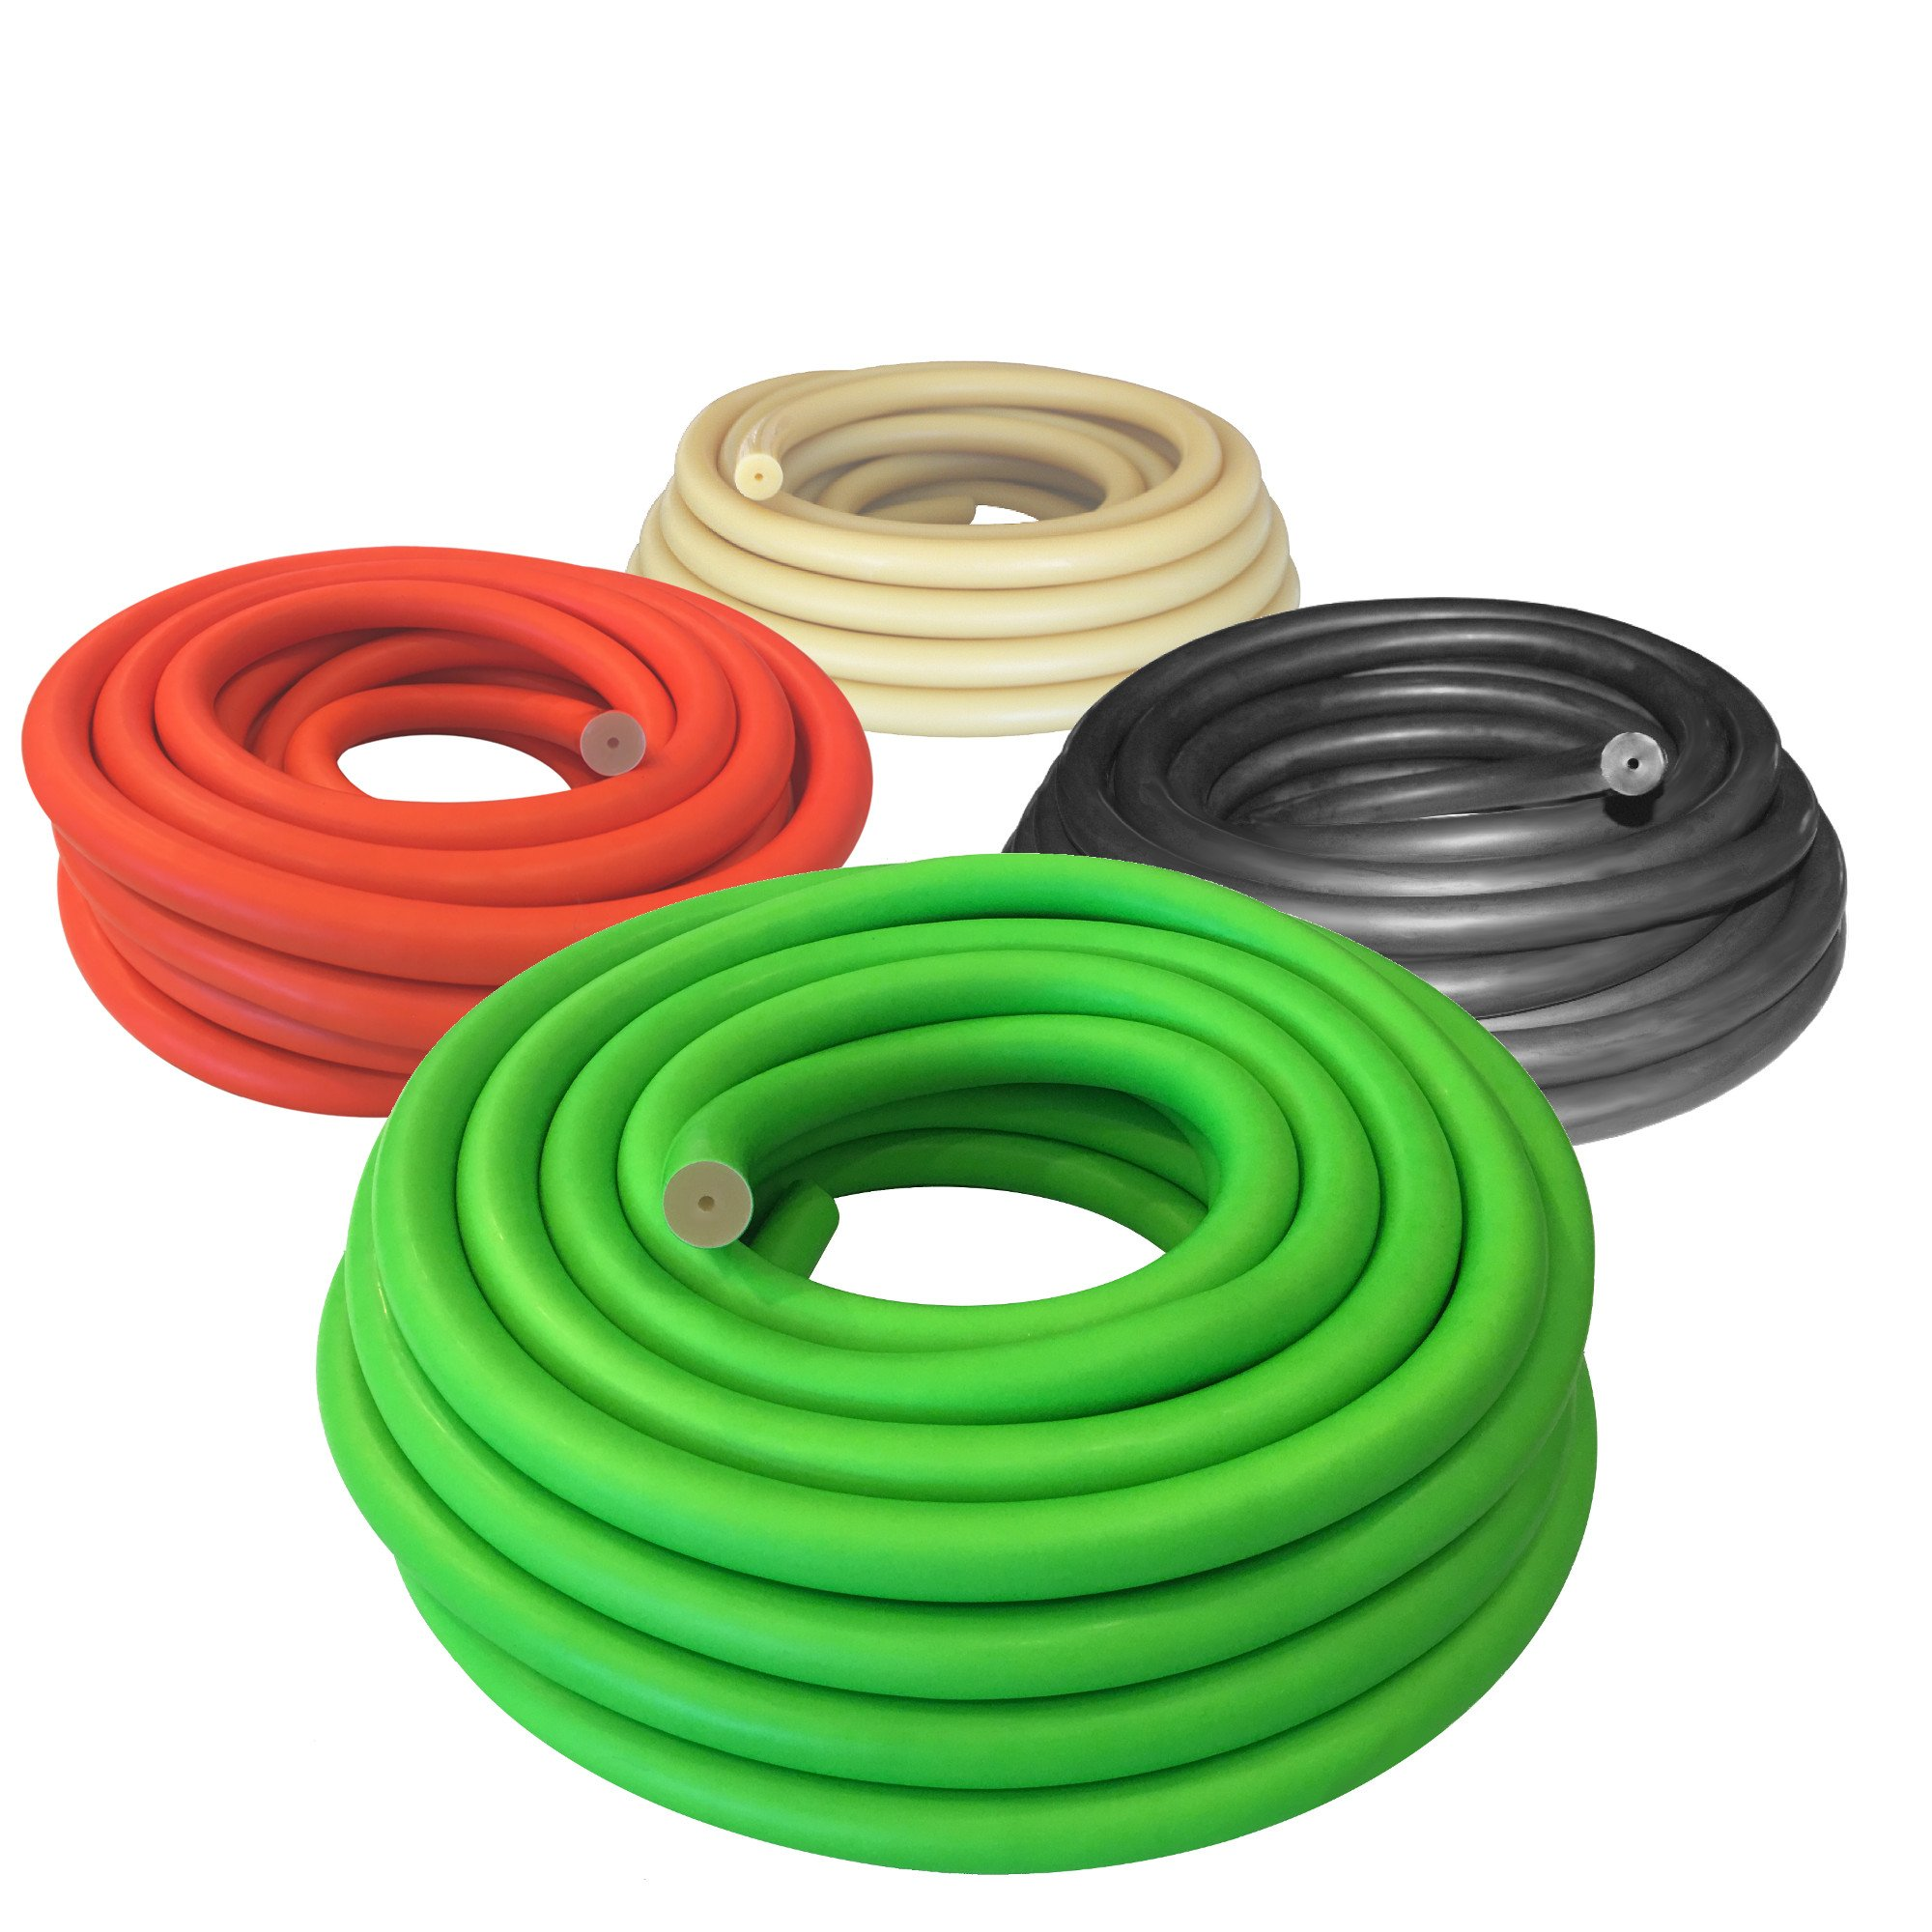 Spearit 5/8OD 1/8ID SPEARGUN RUBBER (GREEN 5ft) by Spearit